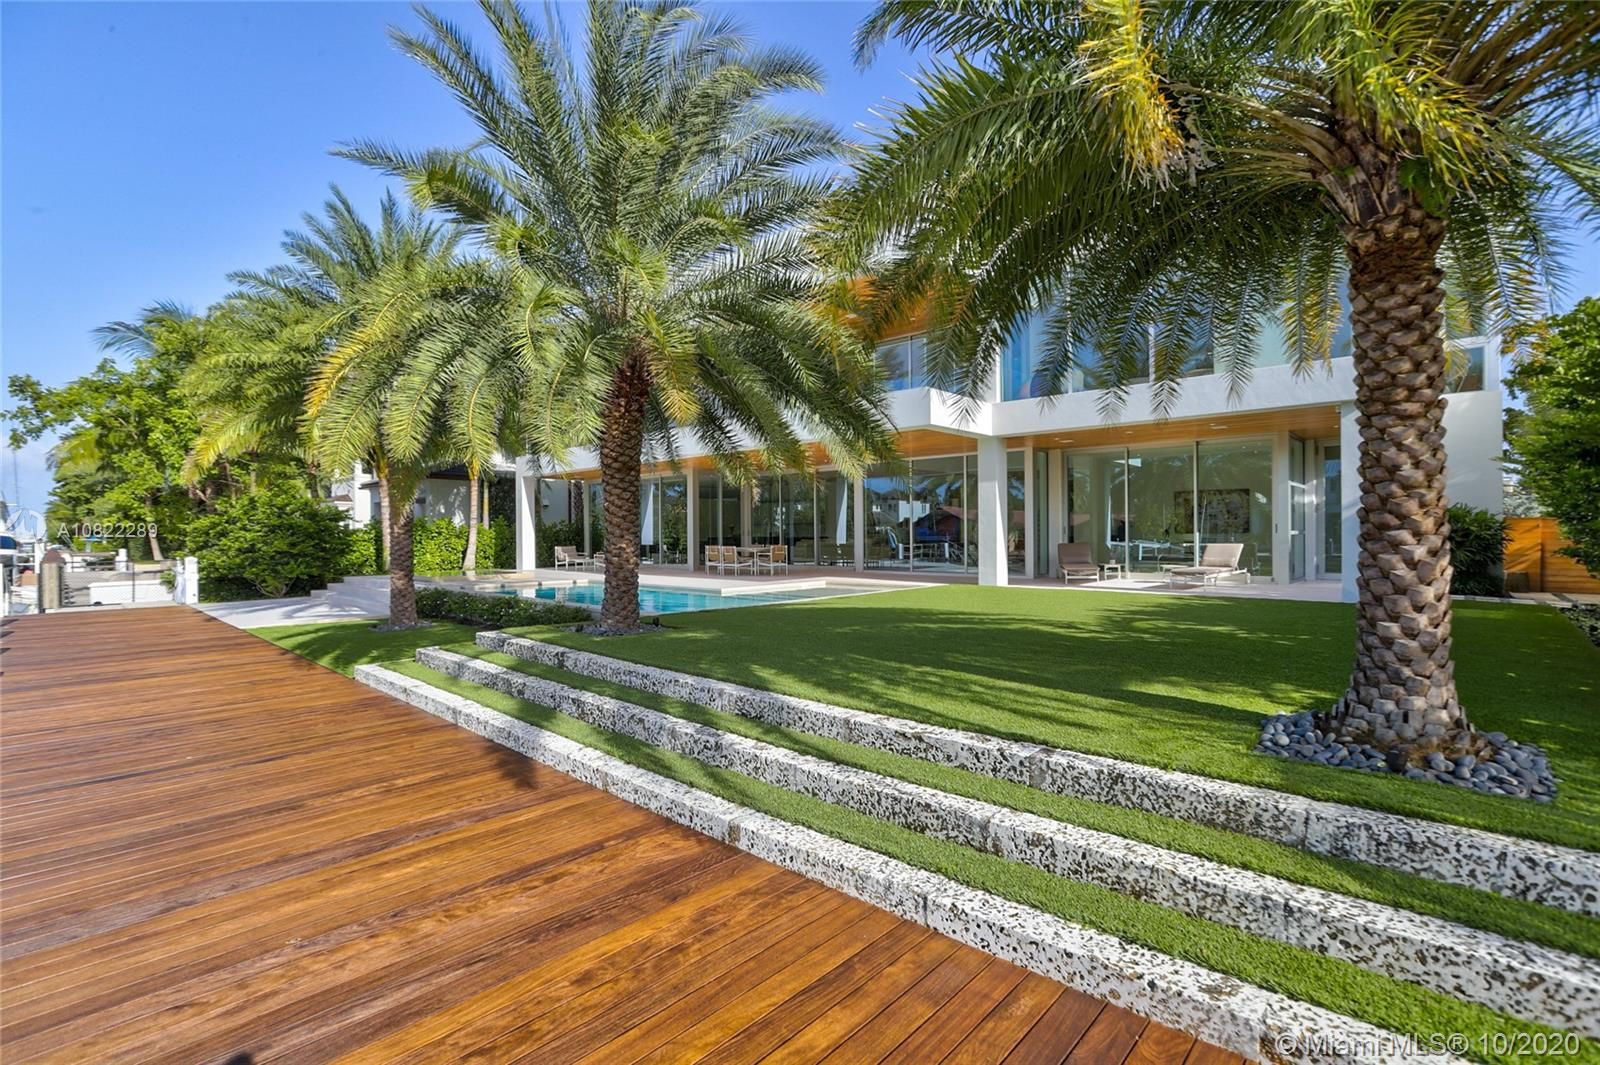 Fort Lauderdale's finest Organic High End Finishes & intelligent Architecture, in exclusive Rio Vista. This modern home offers 100 ft of waterfront w/ new Ipe Dock & Seawall, easy ocean access & 125 ft deep lot w/ Saltwater Heated Pool & Infinity Spa. Eggersmann kitchen w/ Miele & Gaggenau appliances, Glass & Lacquer cabinets & Stainless & Carrara Marble Counters. European Wide Plank Oak & Limestone Floors, Italian laminated hingeless doors, architectural metal baseboards, Pedini Closets. Master Suite w/ Downtown Views, Calacatta Gold Marble & Eggersmann Closet w/ semi precious stone. Sub Zero Wine Cooler, Custom Elevator, Expansive open concept in & out, Smart Home, integrated sound & security, Motorized Shades.